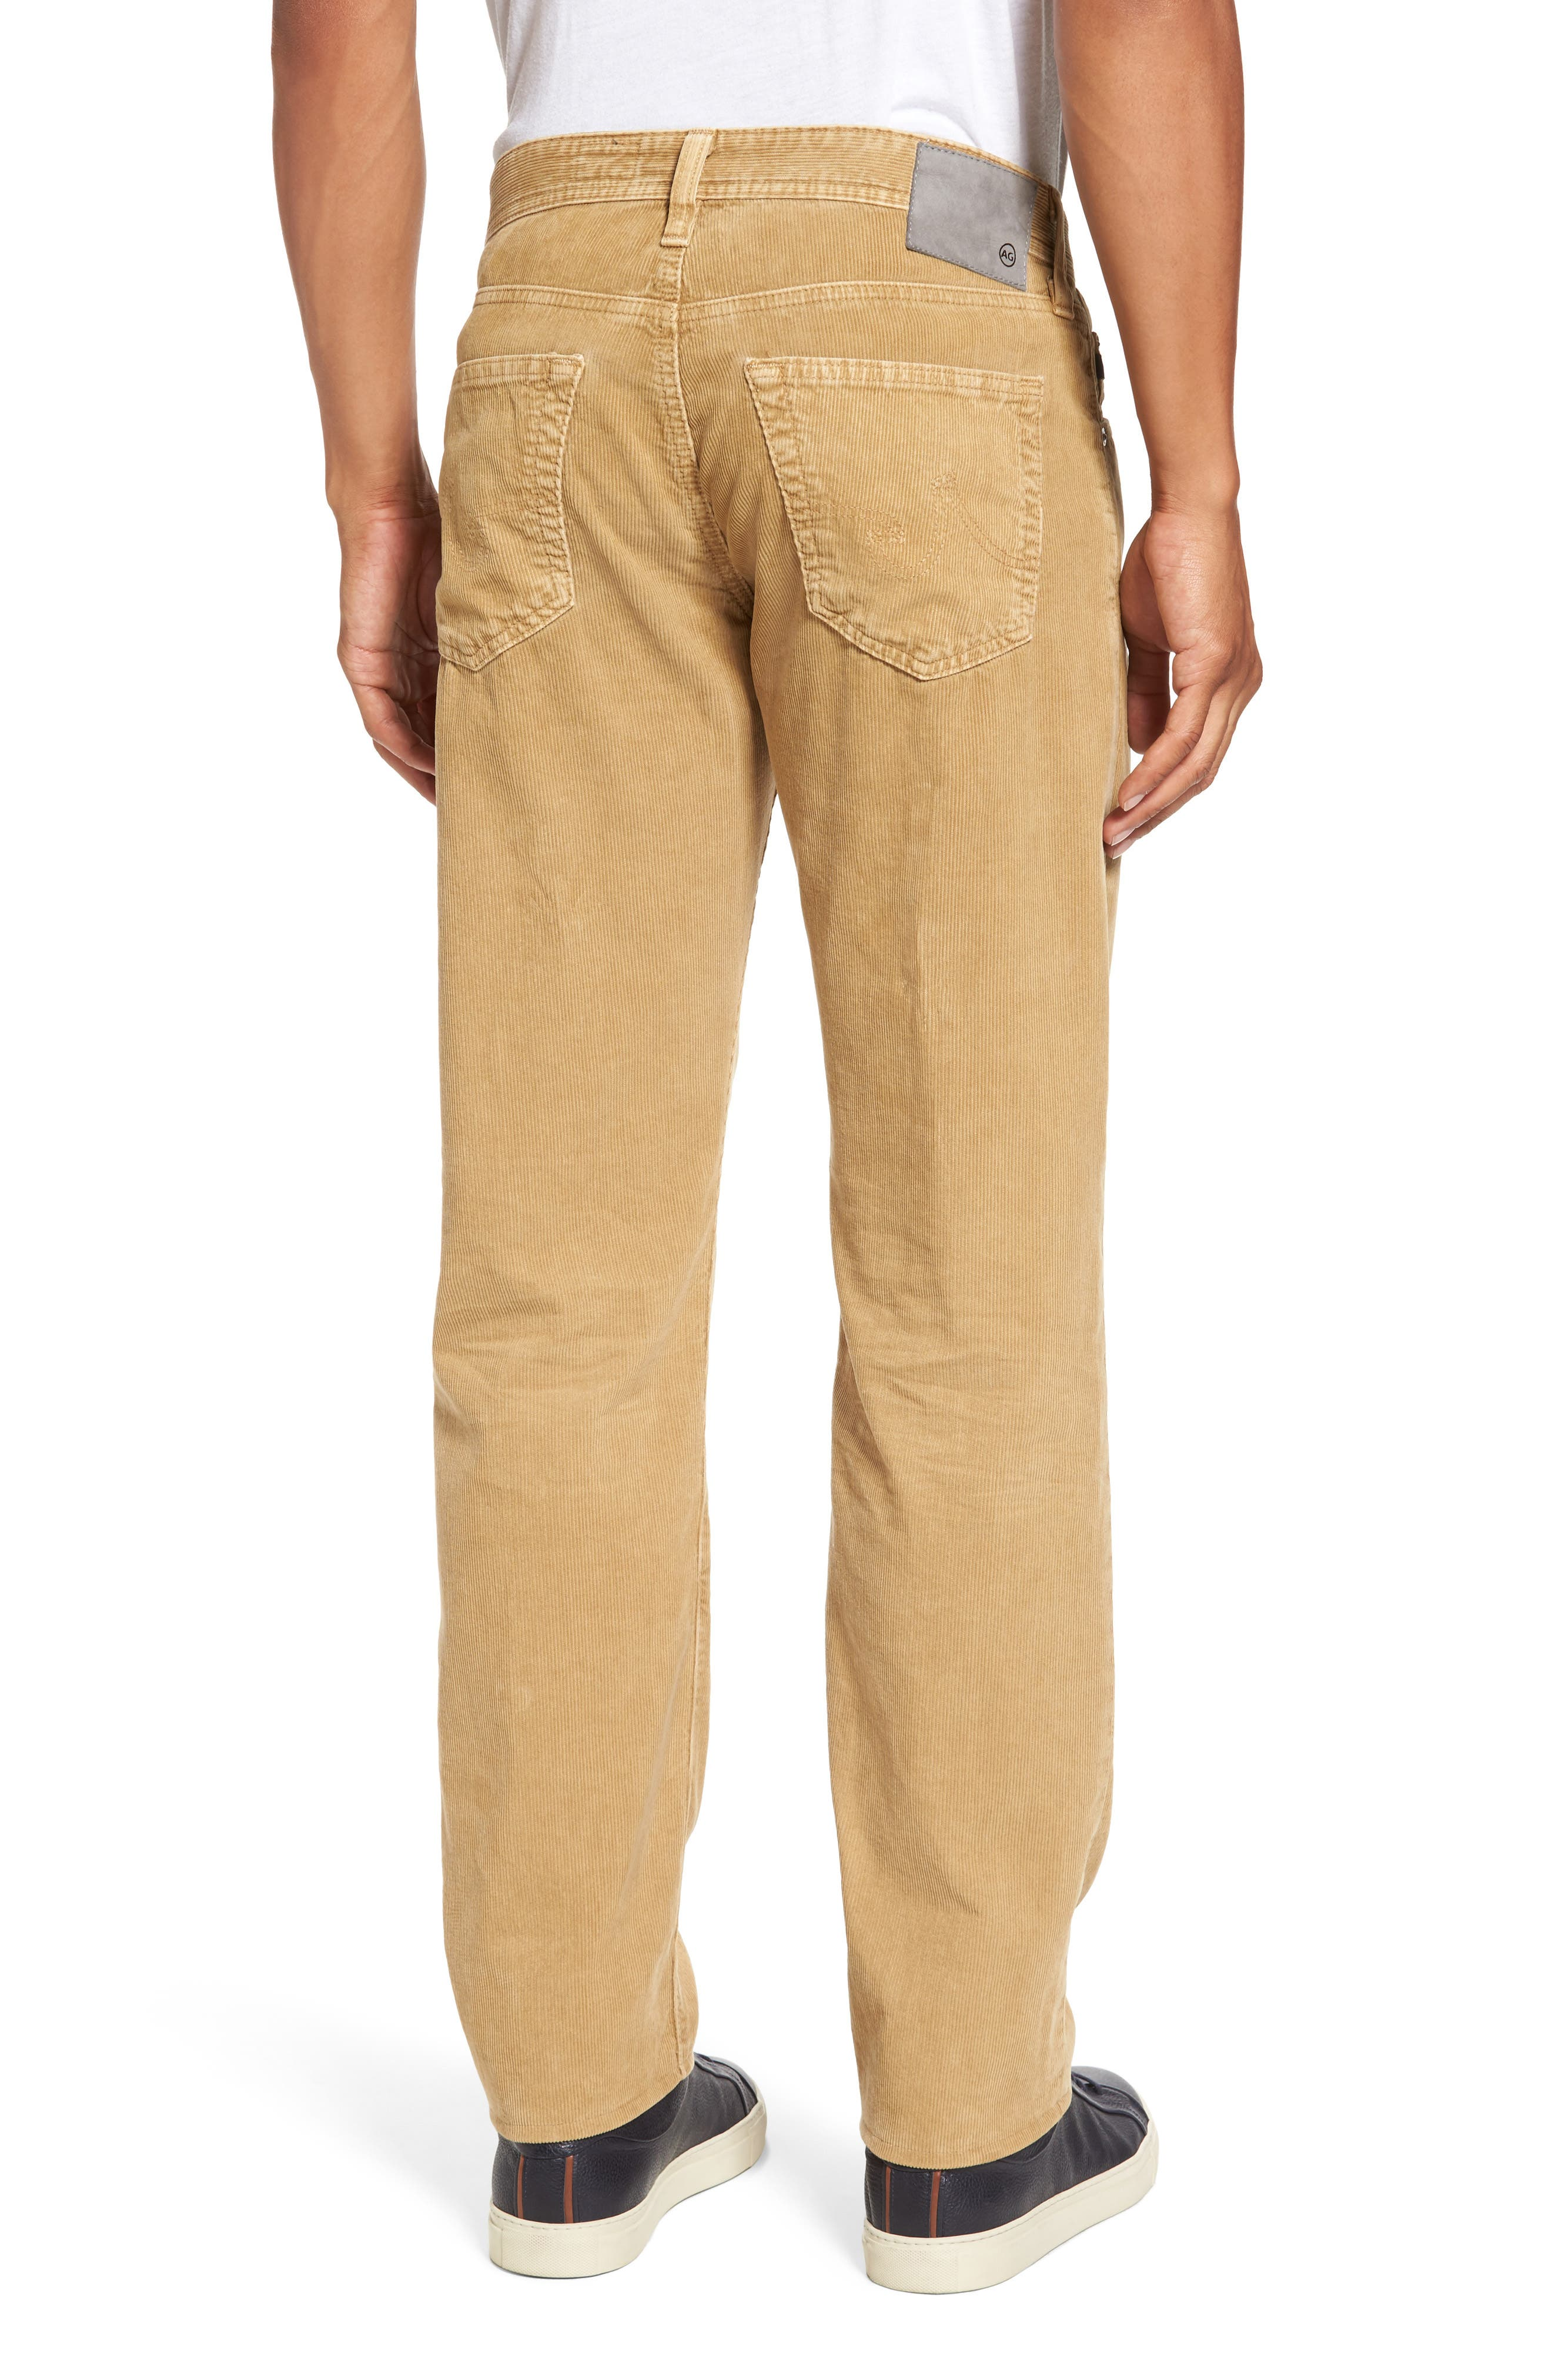 'Graduate' Tailored Straight Leg Corduroy Pants,                             Alternate thumbnail 17, color,